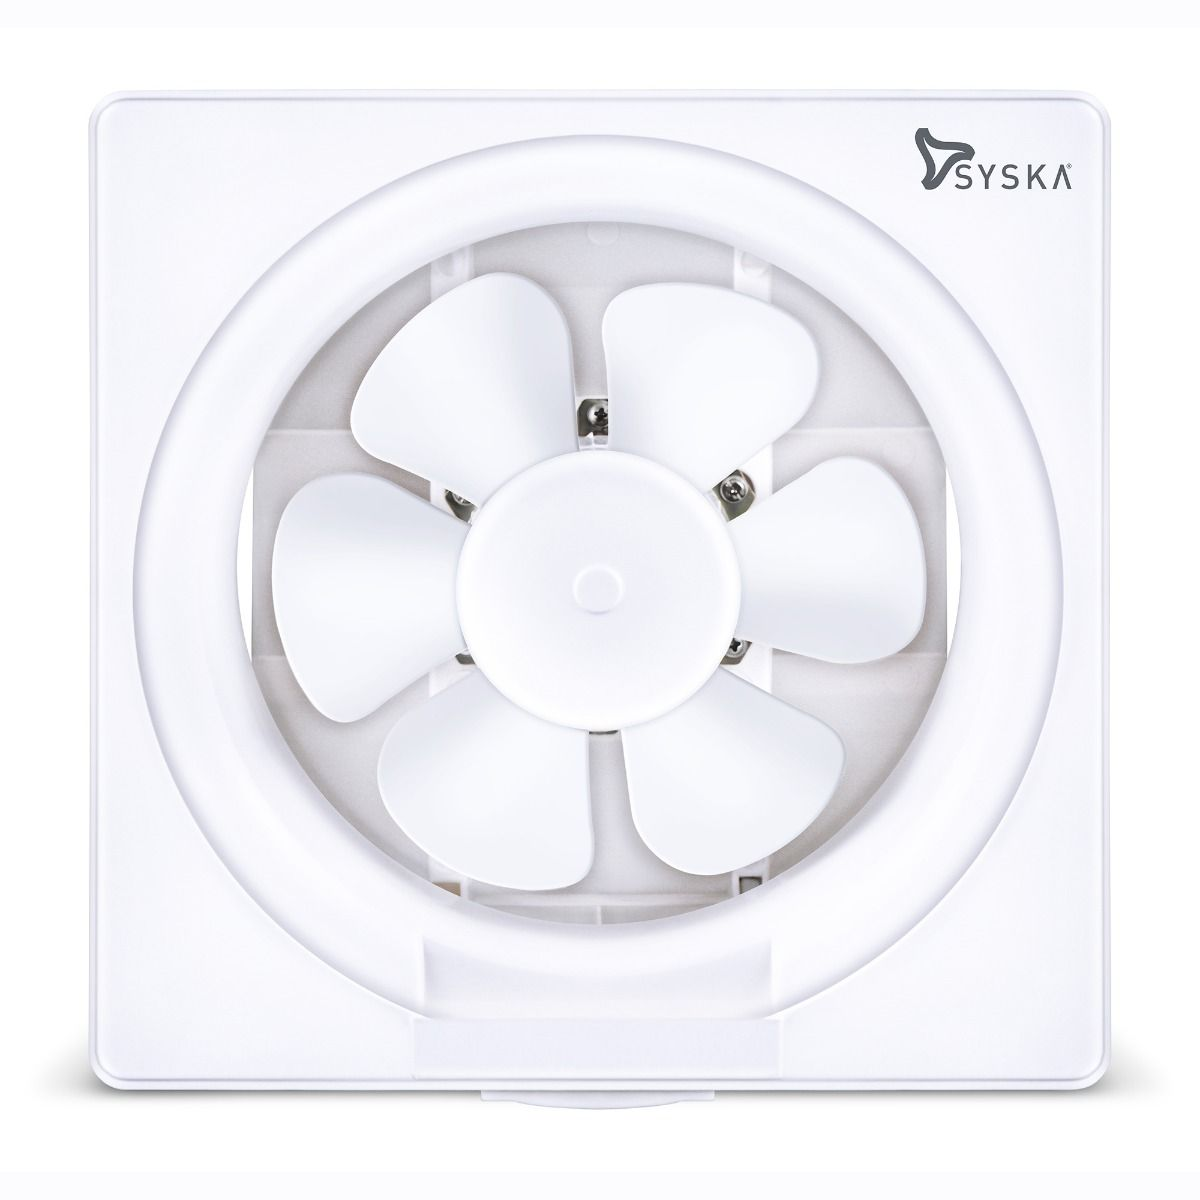 SYSKA Aerobrisk (200 mm) Blade Size Exhaust Fan for Kitchen, Bathroom, and Office with Auto Shutters.